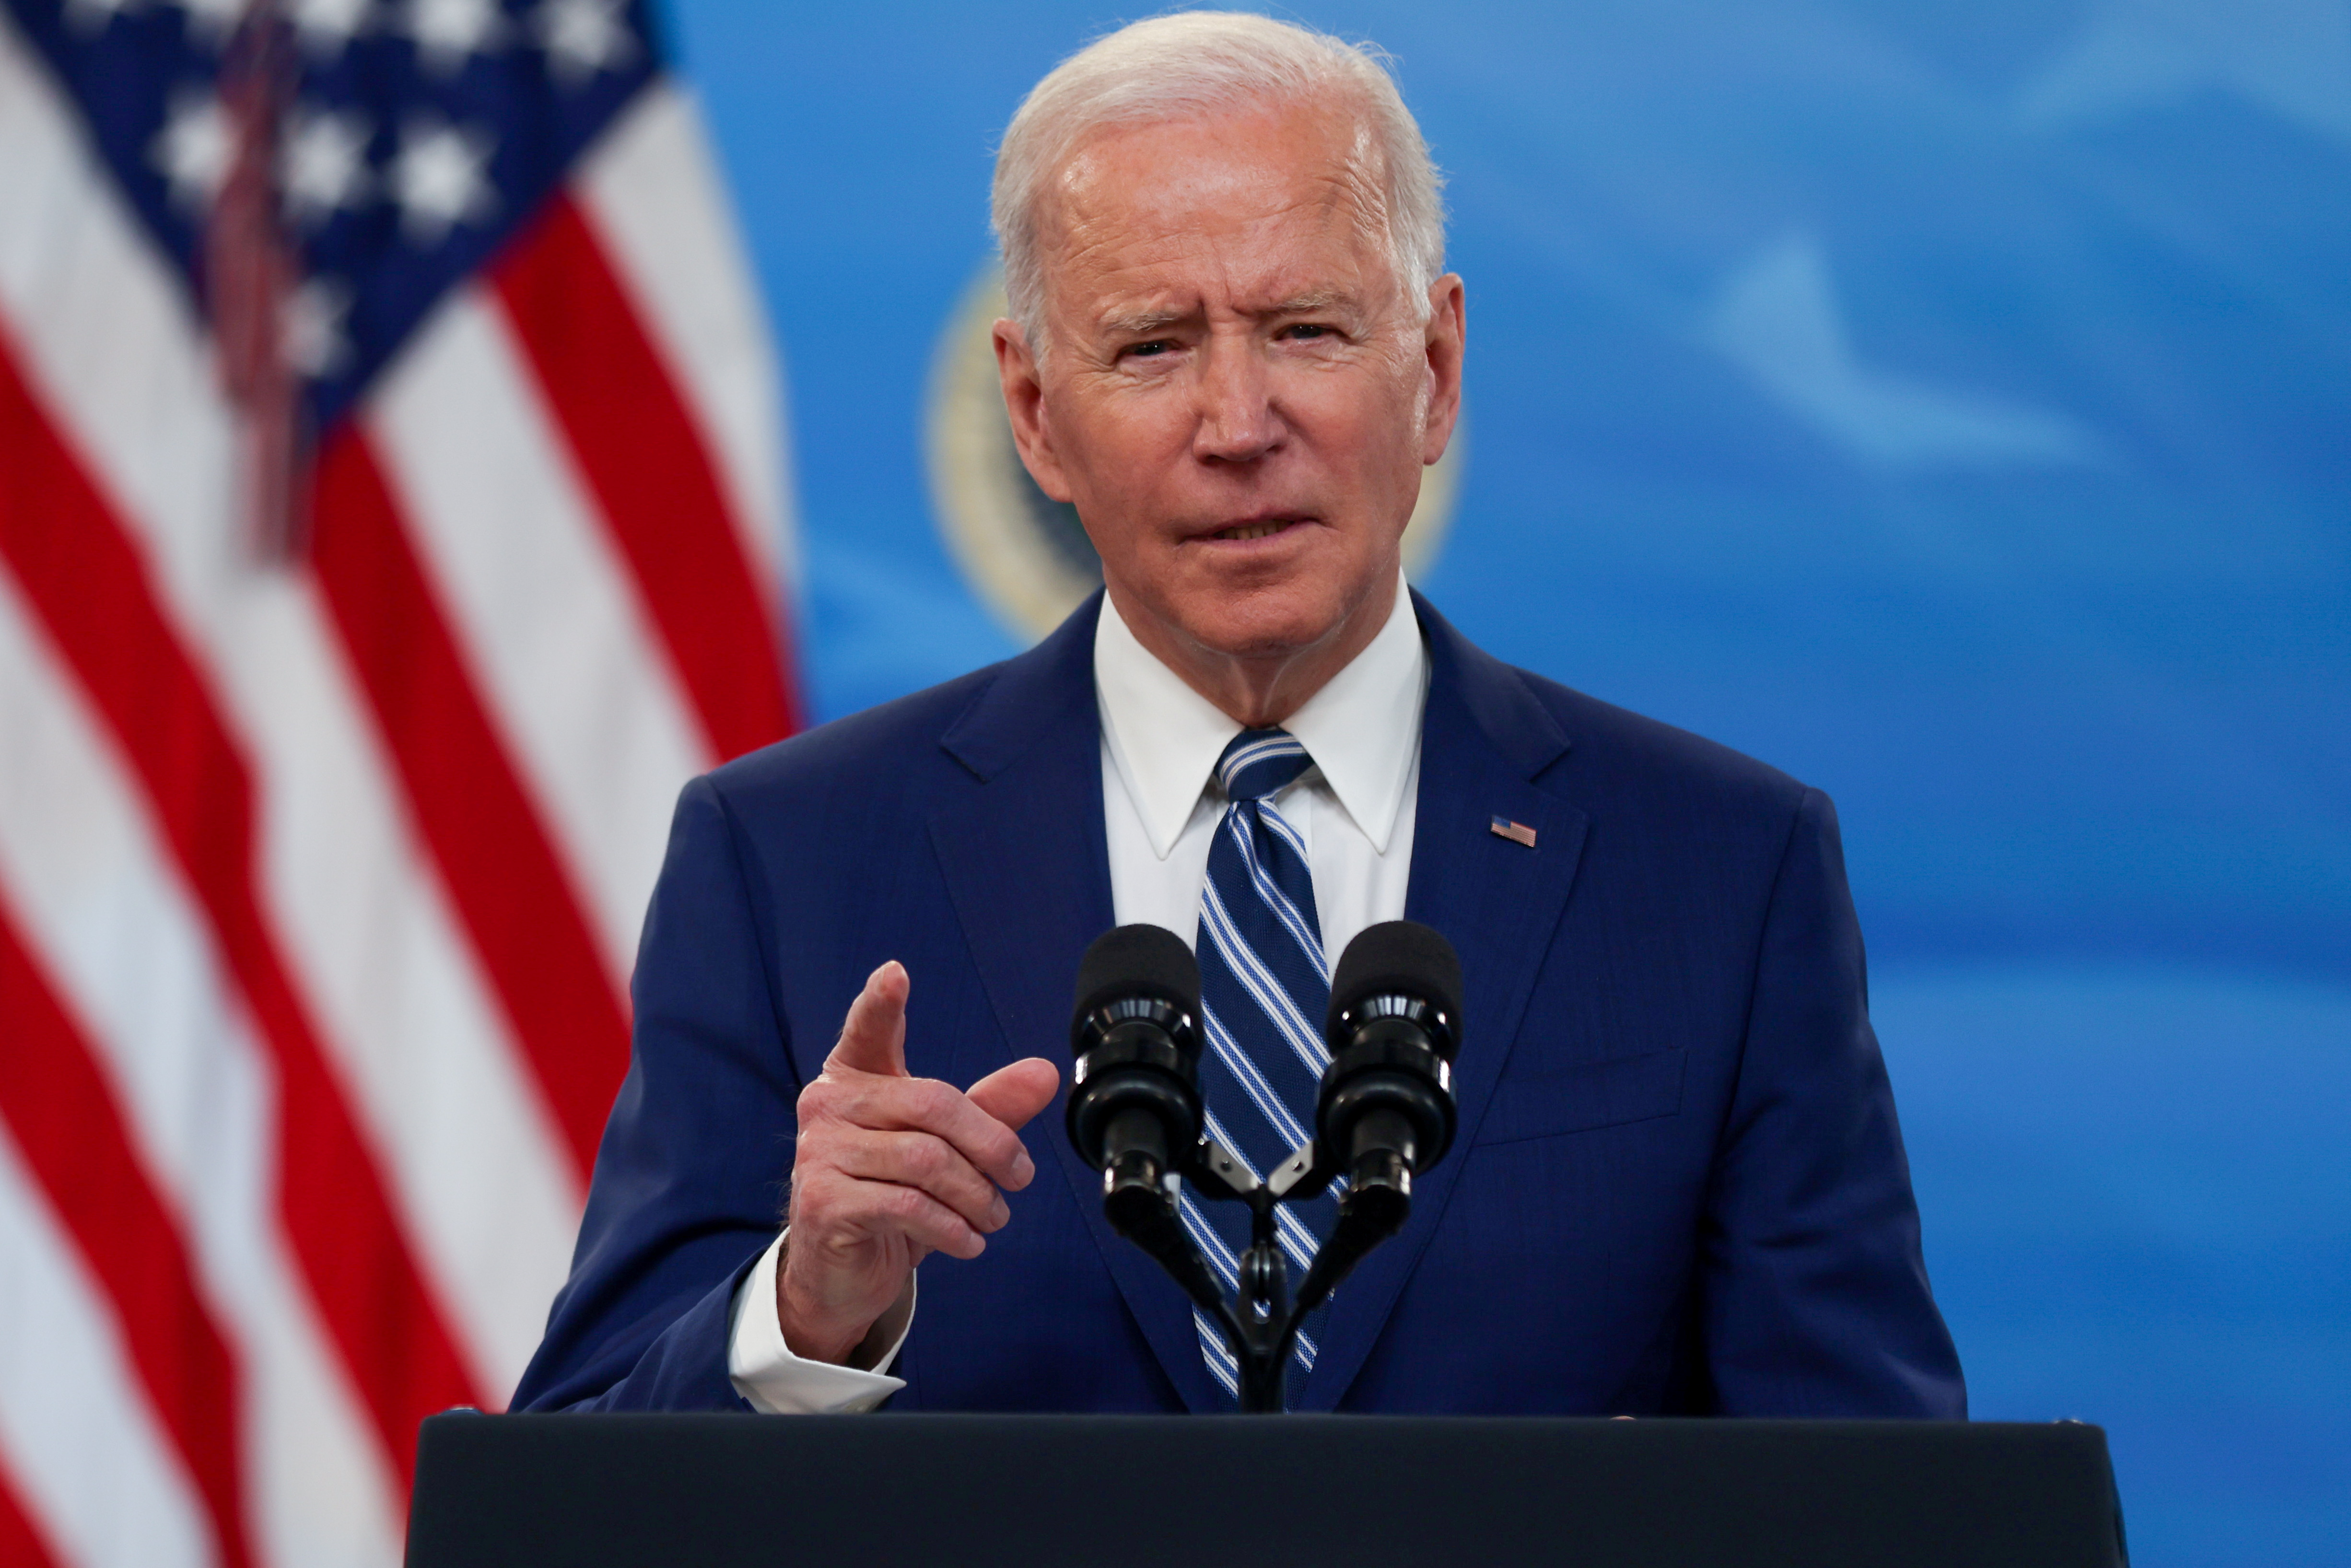 U.S. President Joe Biden delivers remarks after a meeting with his COVID-19 Response Team on the coronavirus disease (COVID-19) pandemic and the state of vaccinations, on the White House campus in Washington, U.S., March 29, 2021.  REUTERS/Jonathan Ernst/File Photo